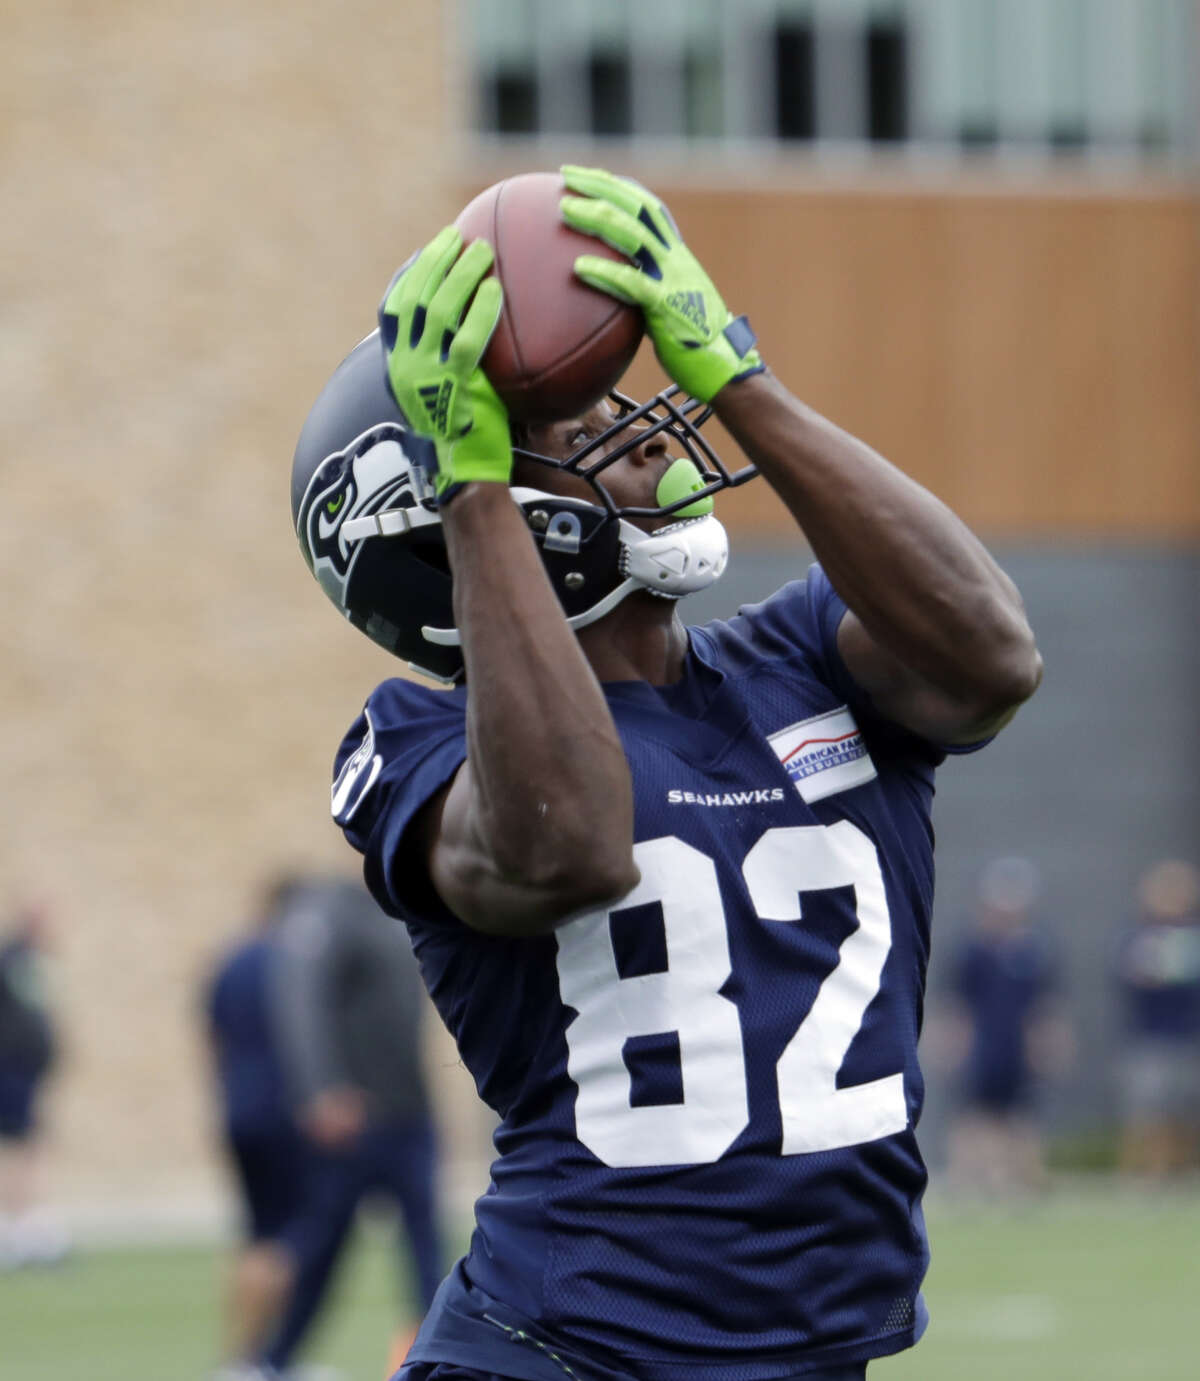 Amara Darboh needs to show the Seahawks something The second-year wide receiver is expected to play against the Raiders on Thursday. He's been one of the Seahawks' most mysterious storylines the last few weeks. Seattle invested a lot in him (a third-round pick in 2017) and you'd think he should be a lock to make the 53-man roster, but he's just missed so much time. His early career has been filled with nagging injuries. He's yet to play in a preseason game due to a hip injury and a clavicle issue. That's why Thursday is so important for Darboh. It appears that five wide receivers are locks at this point -- Doug Baldwin, Tyler Lockett, Jaron Brown, Brandon Marshall and David Moore. If Darboh plays well against the Raiders, he probably makes the team. If not, there's a chance good chance he gets cut.